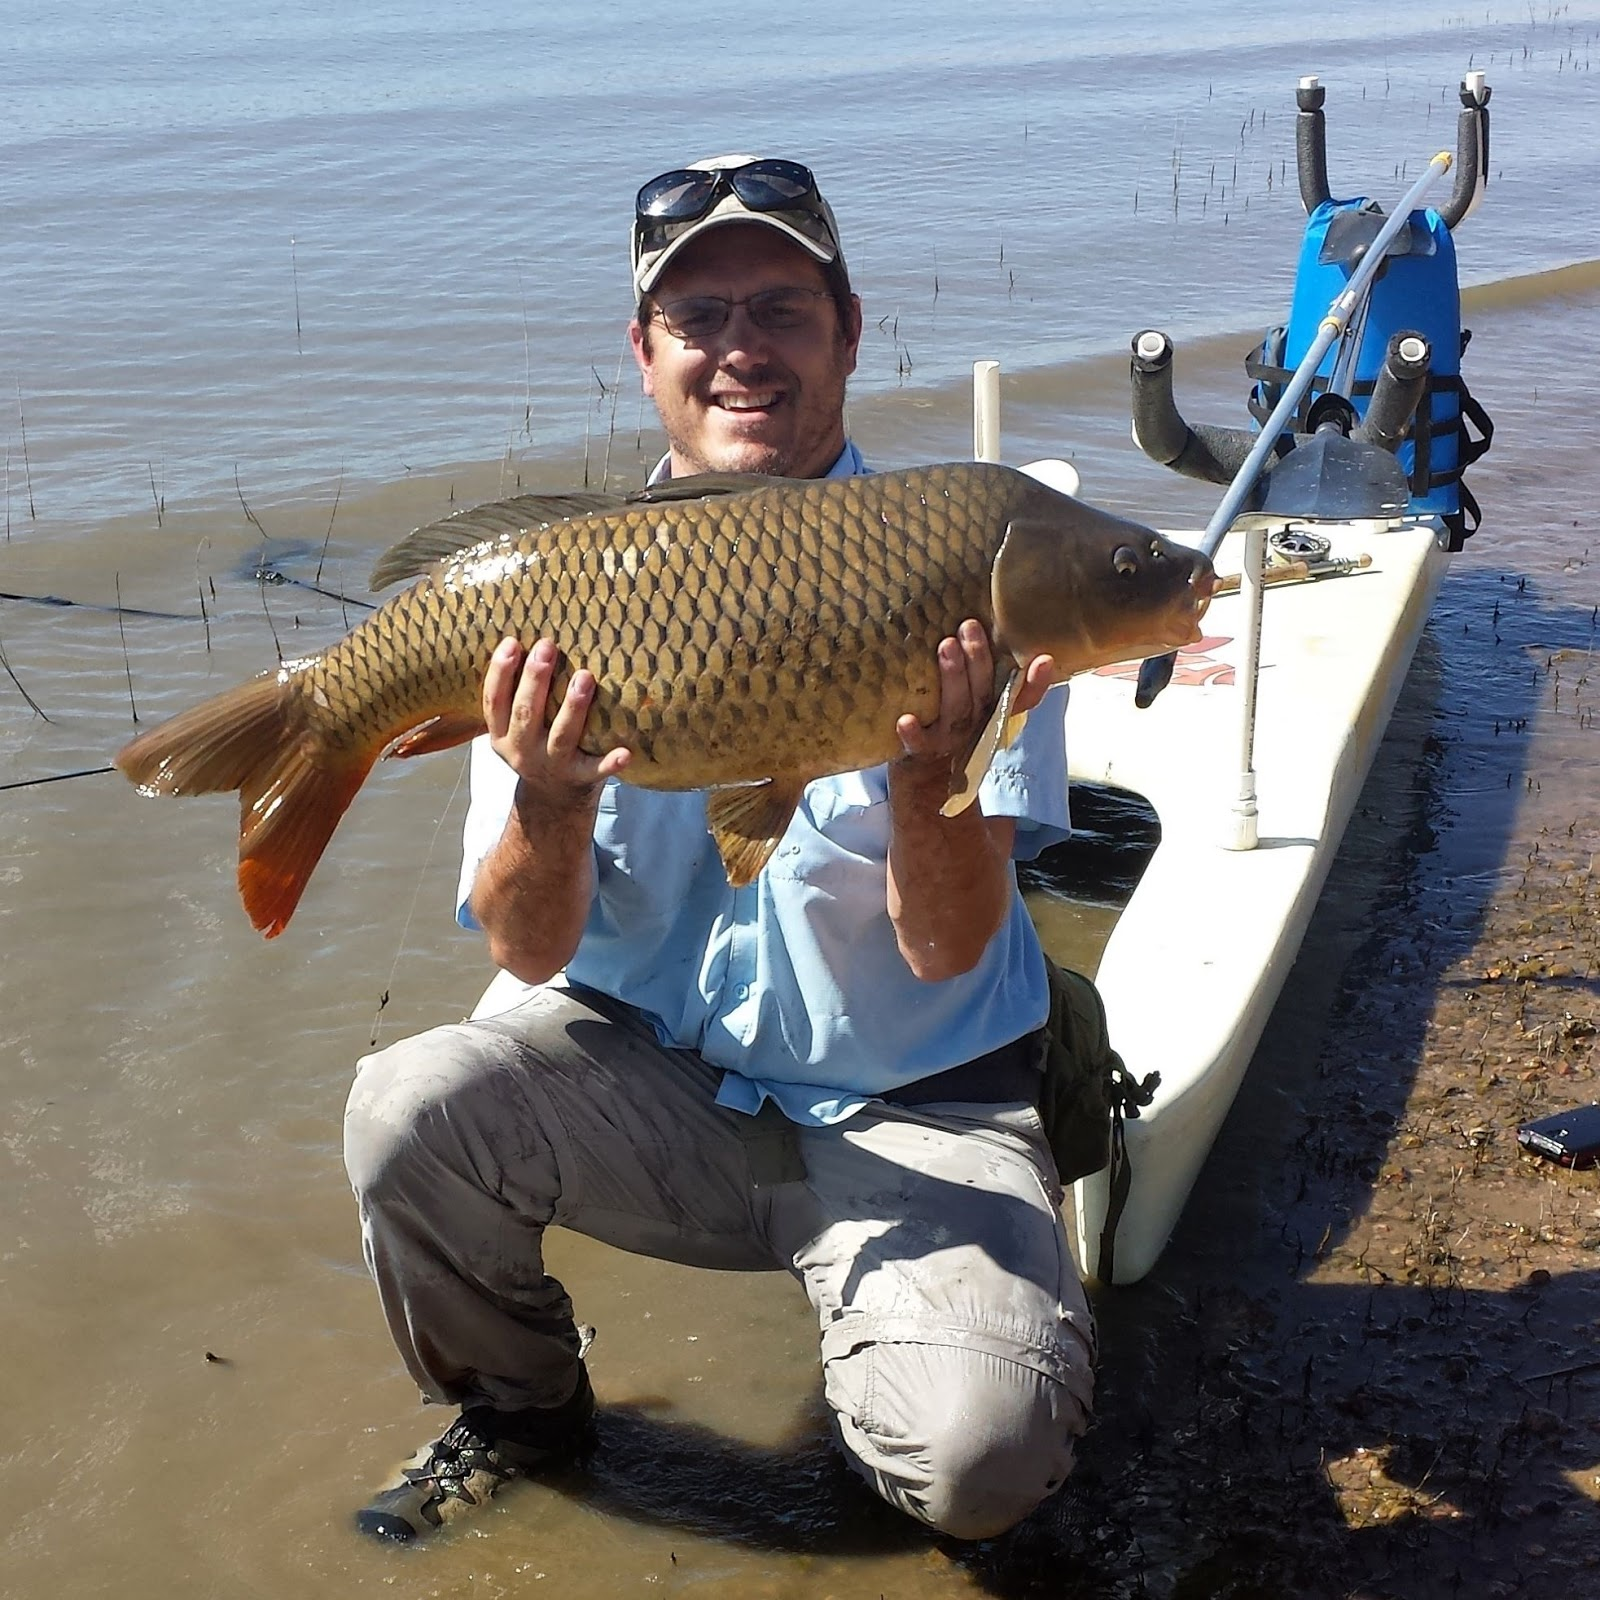 Fly carpin large 24lb common carp caught on a fly from a stand up paddle board publicscrutiny Images